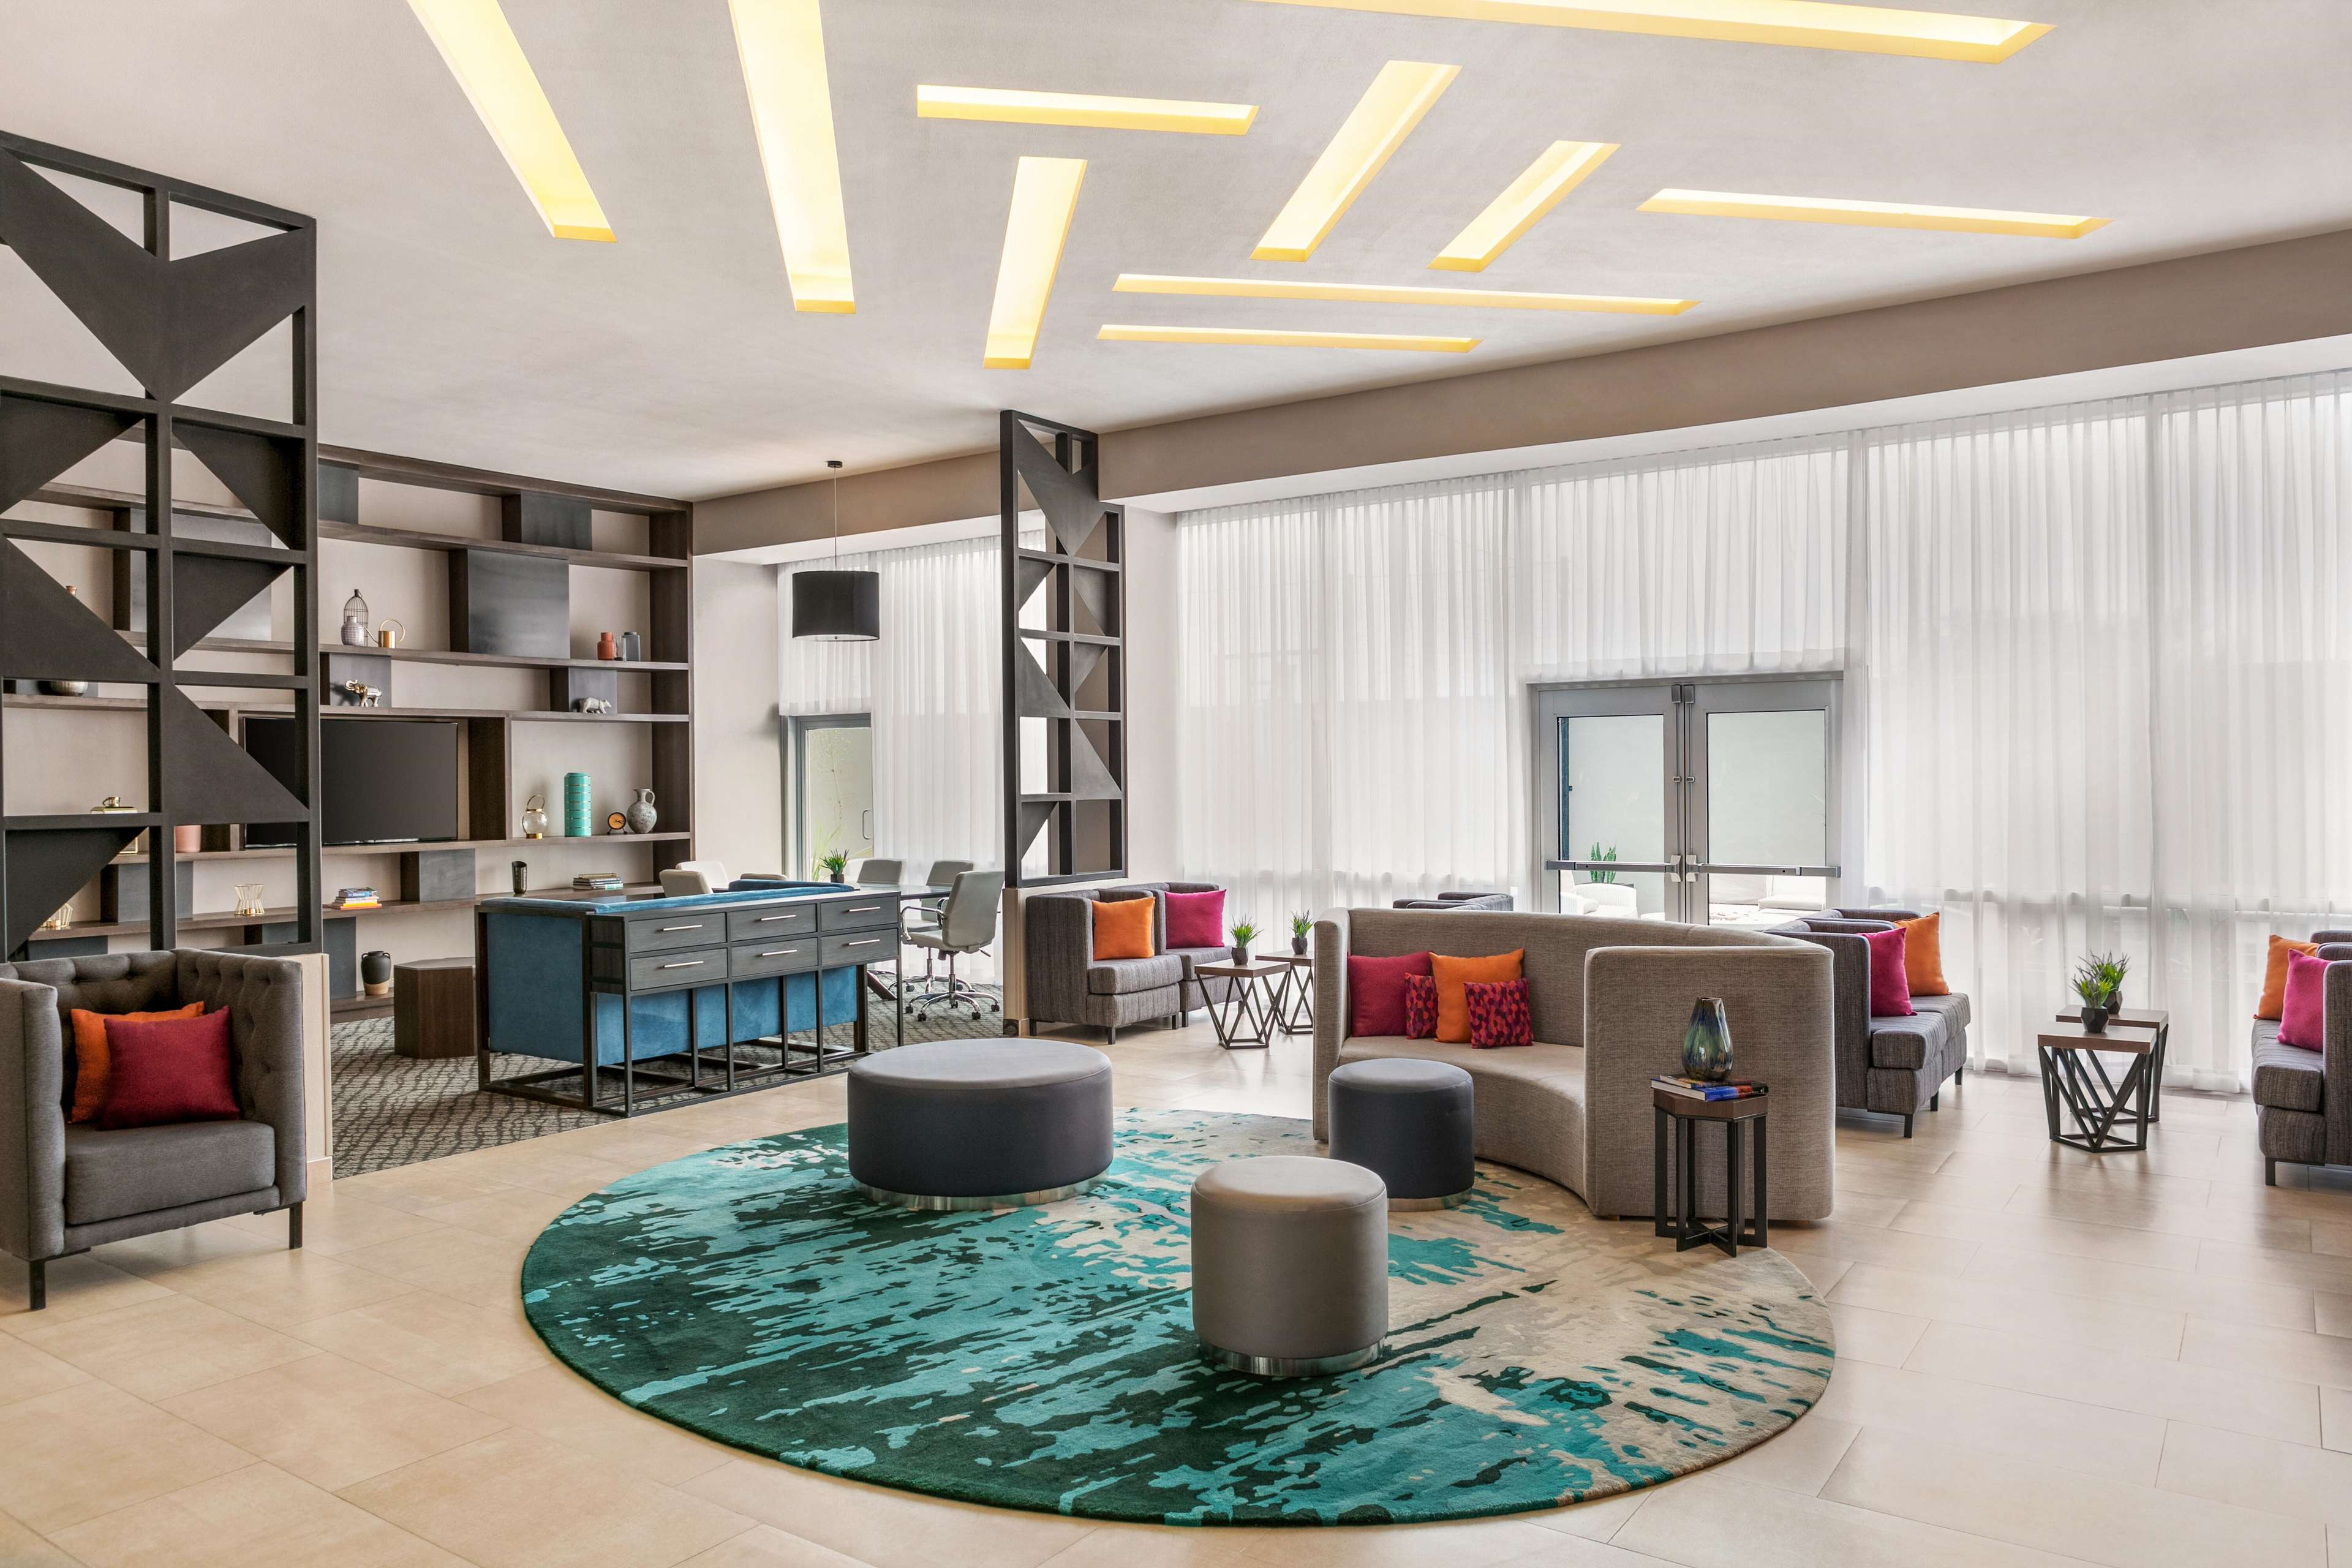 Images Homewood Suites by Hilton Monterrey Apodaca